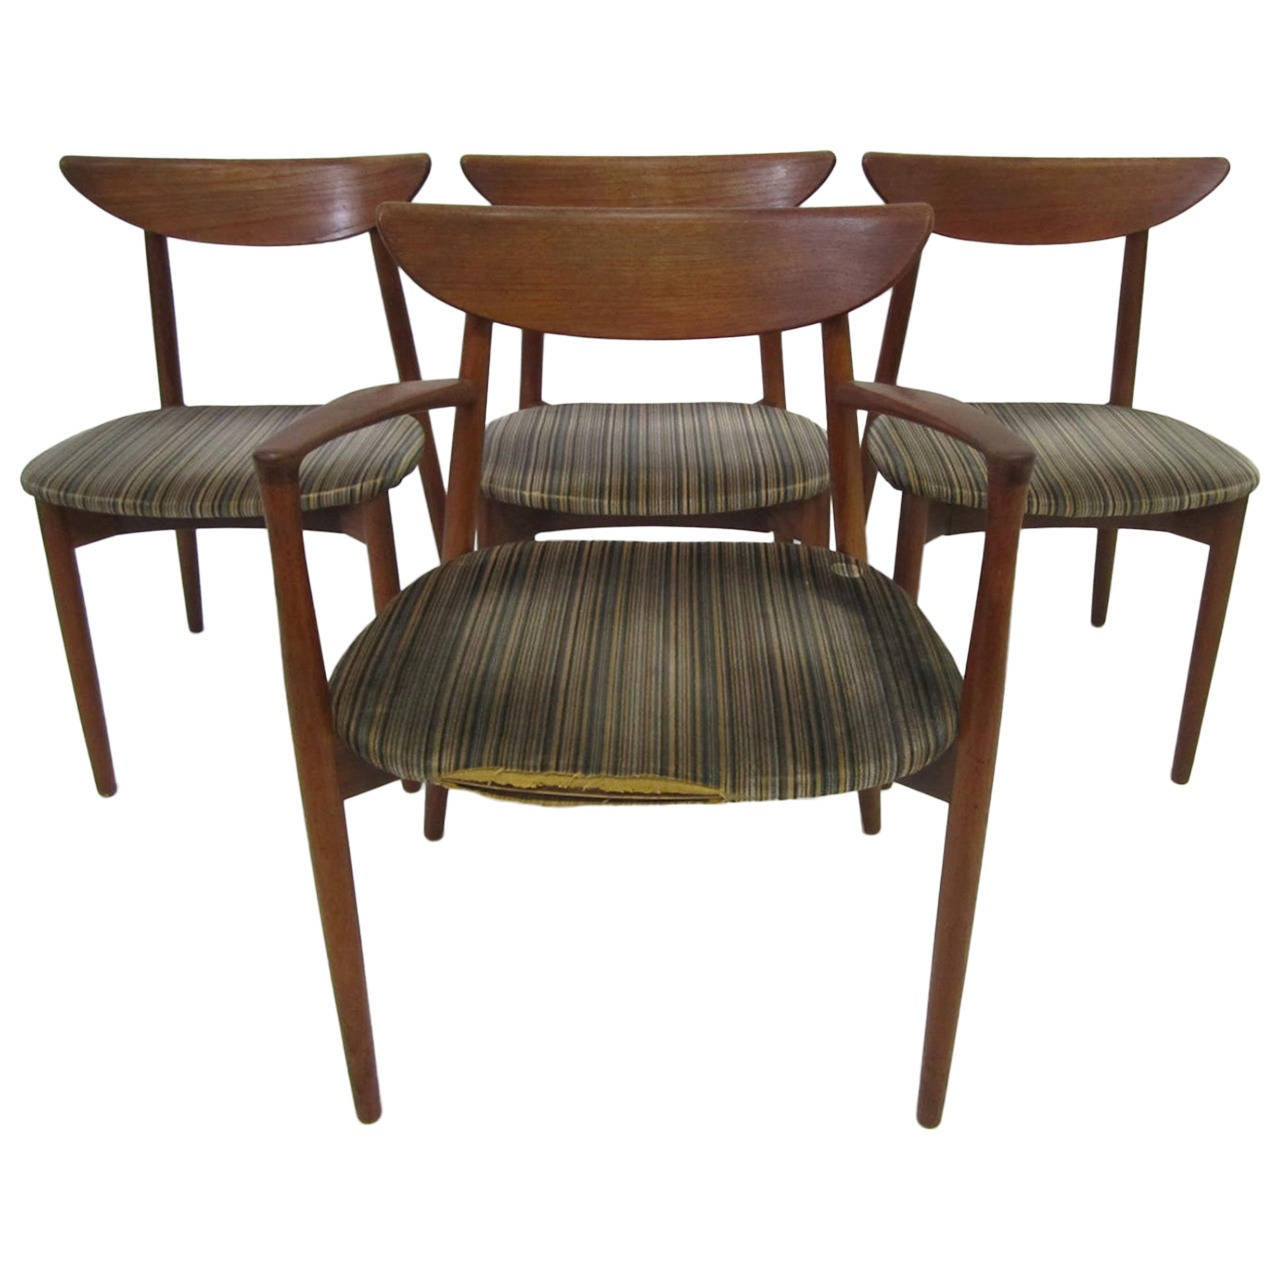 Modern Dining Chairs ~ Set of four harry ostergaard teak danish modern dining